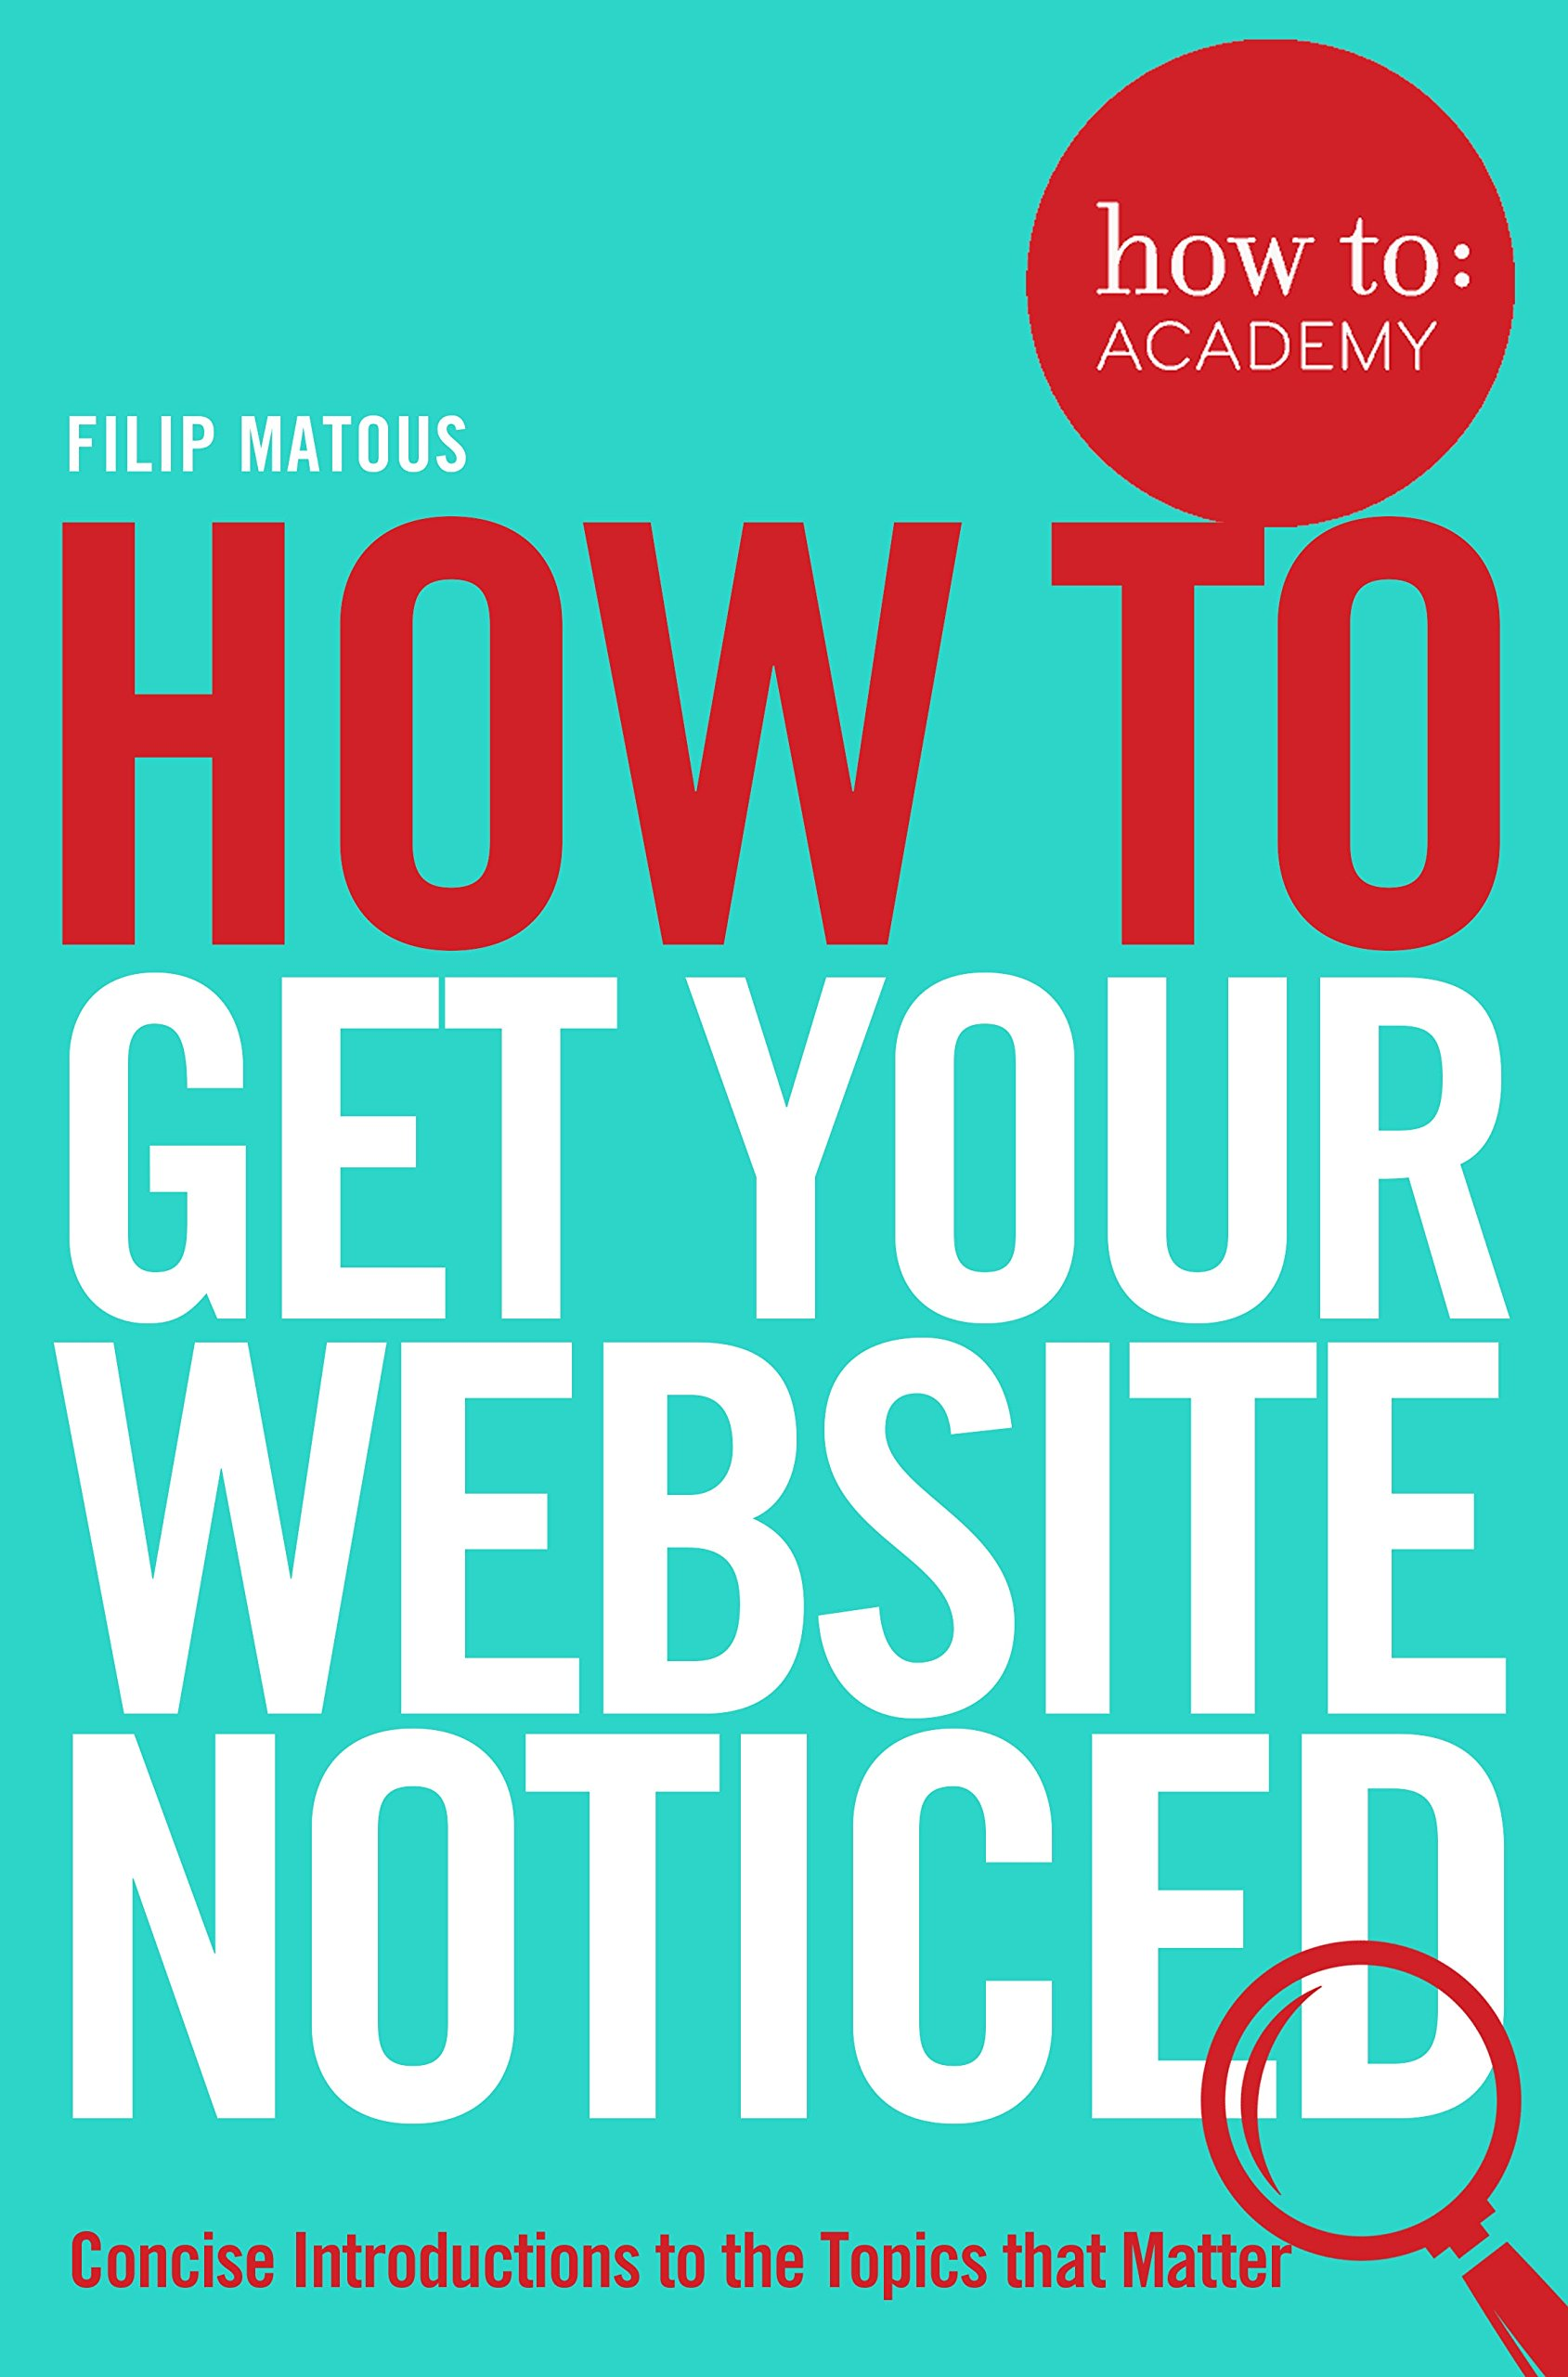 How to Get Your Website Noticed (How To: Academy): Filip Matous: 9781509814497: Amazon.com: Books